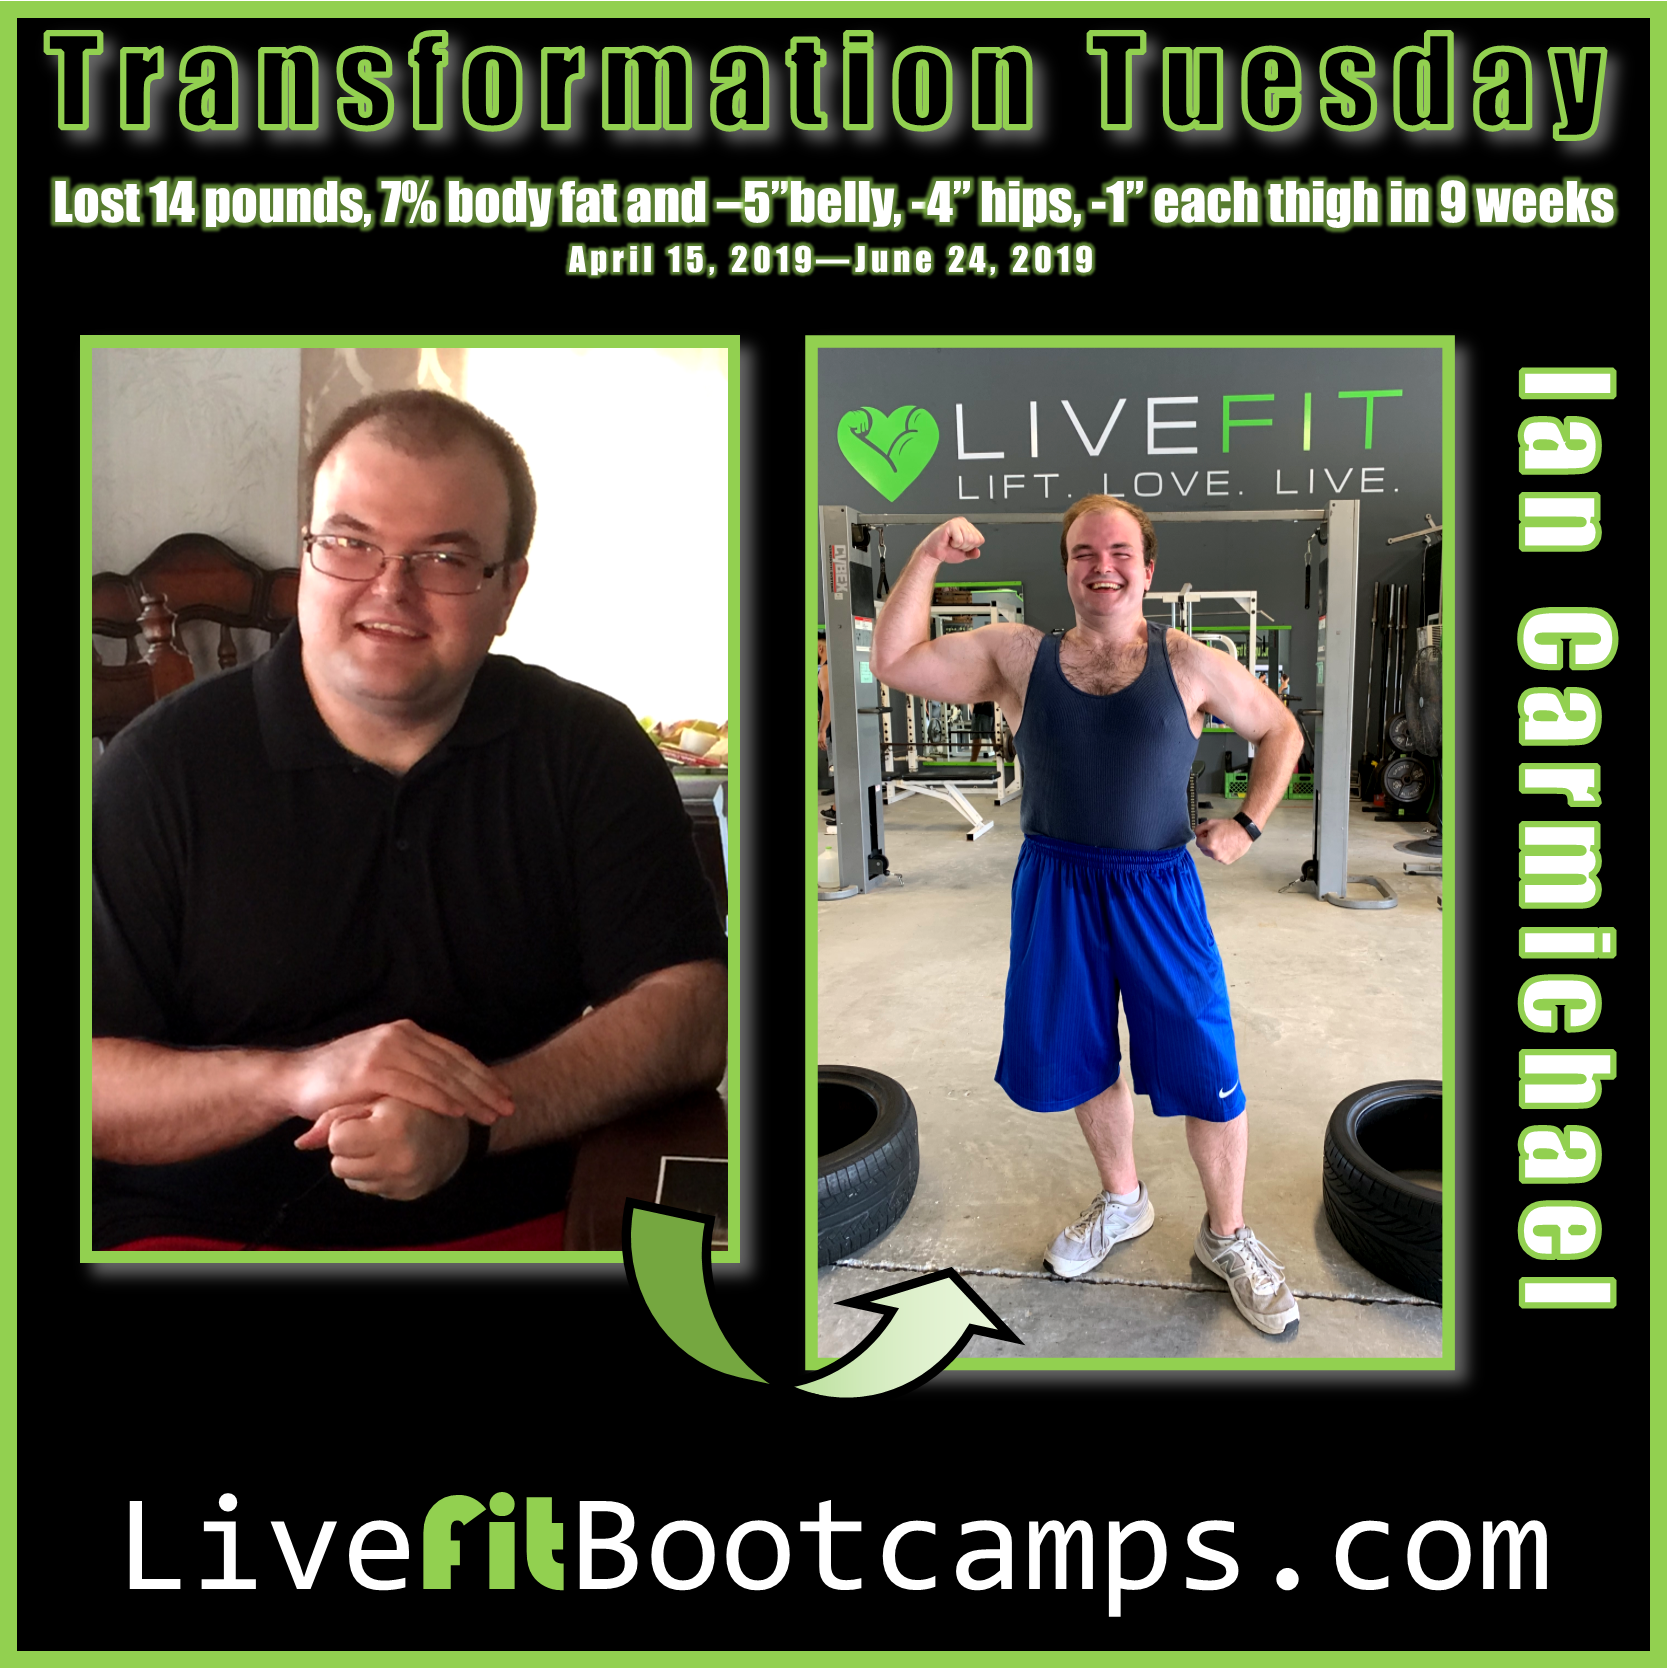 Ian transformation tuesday weight loss